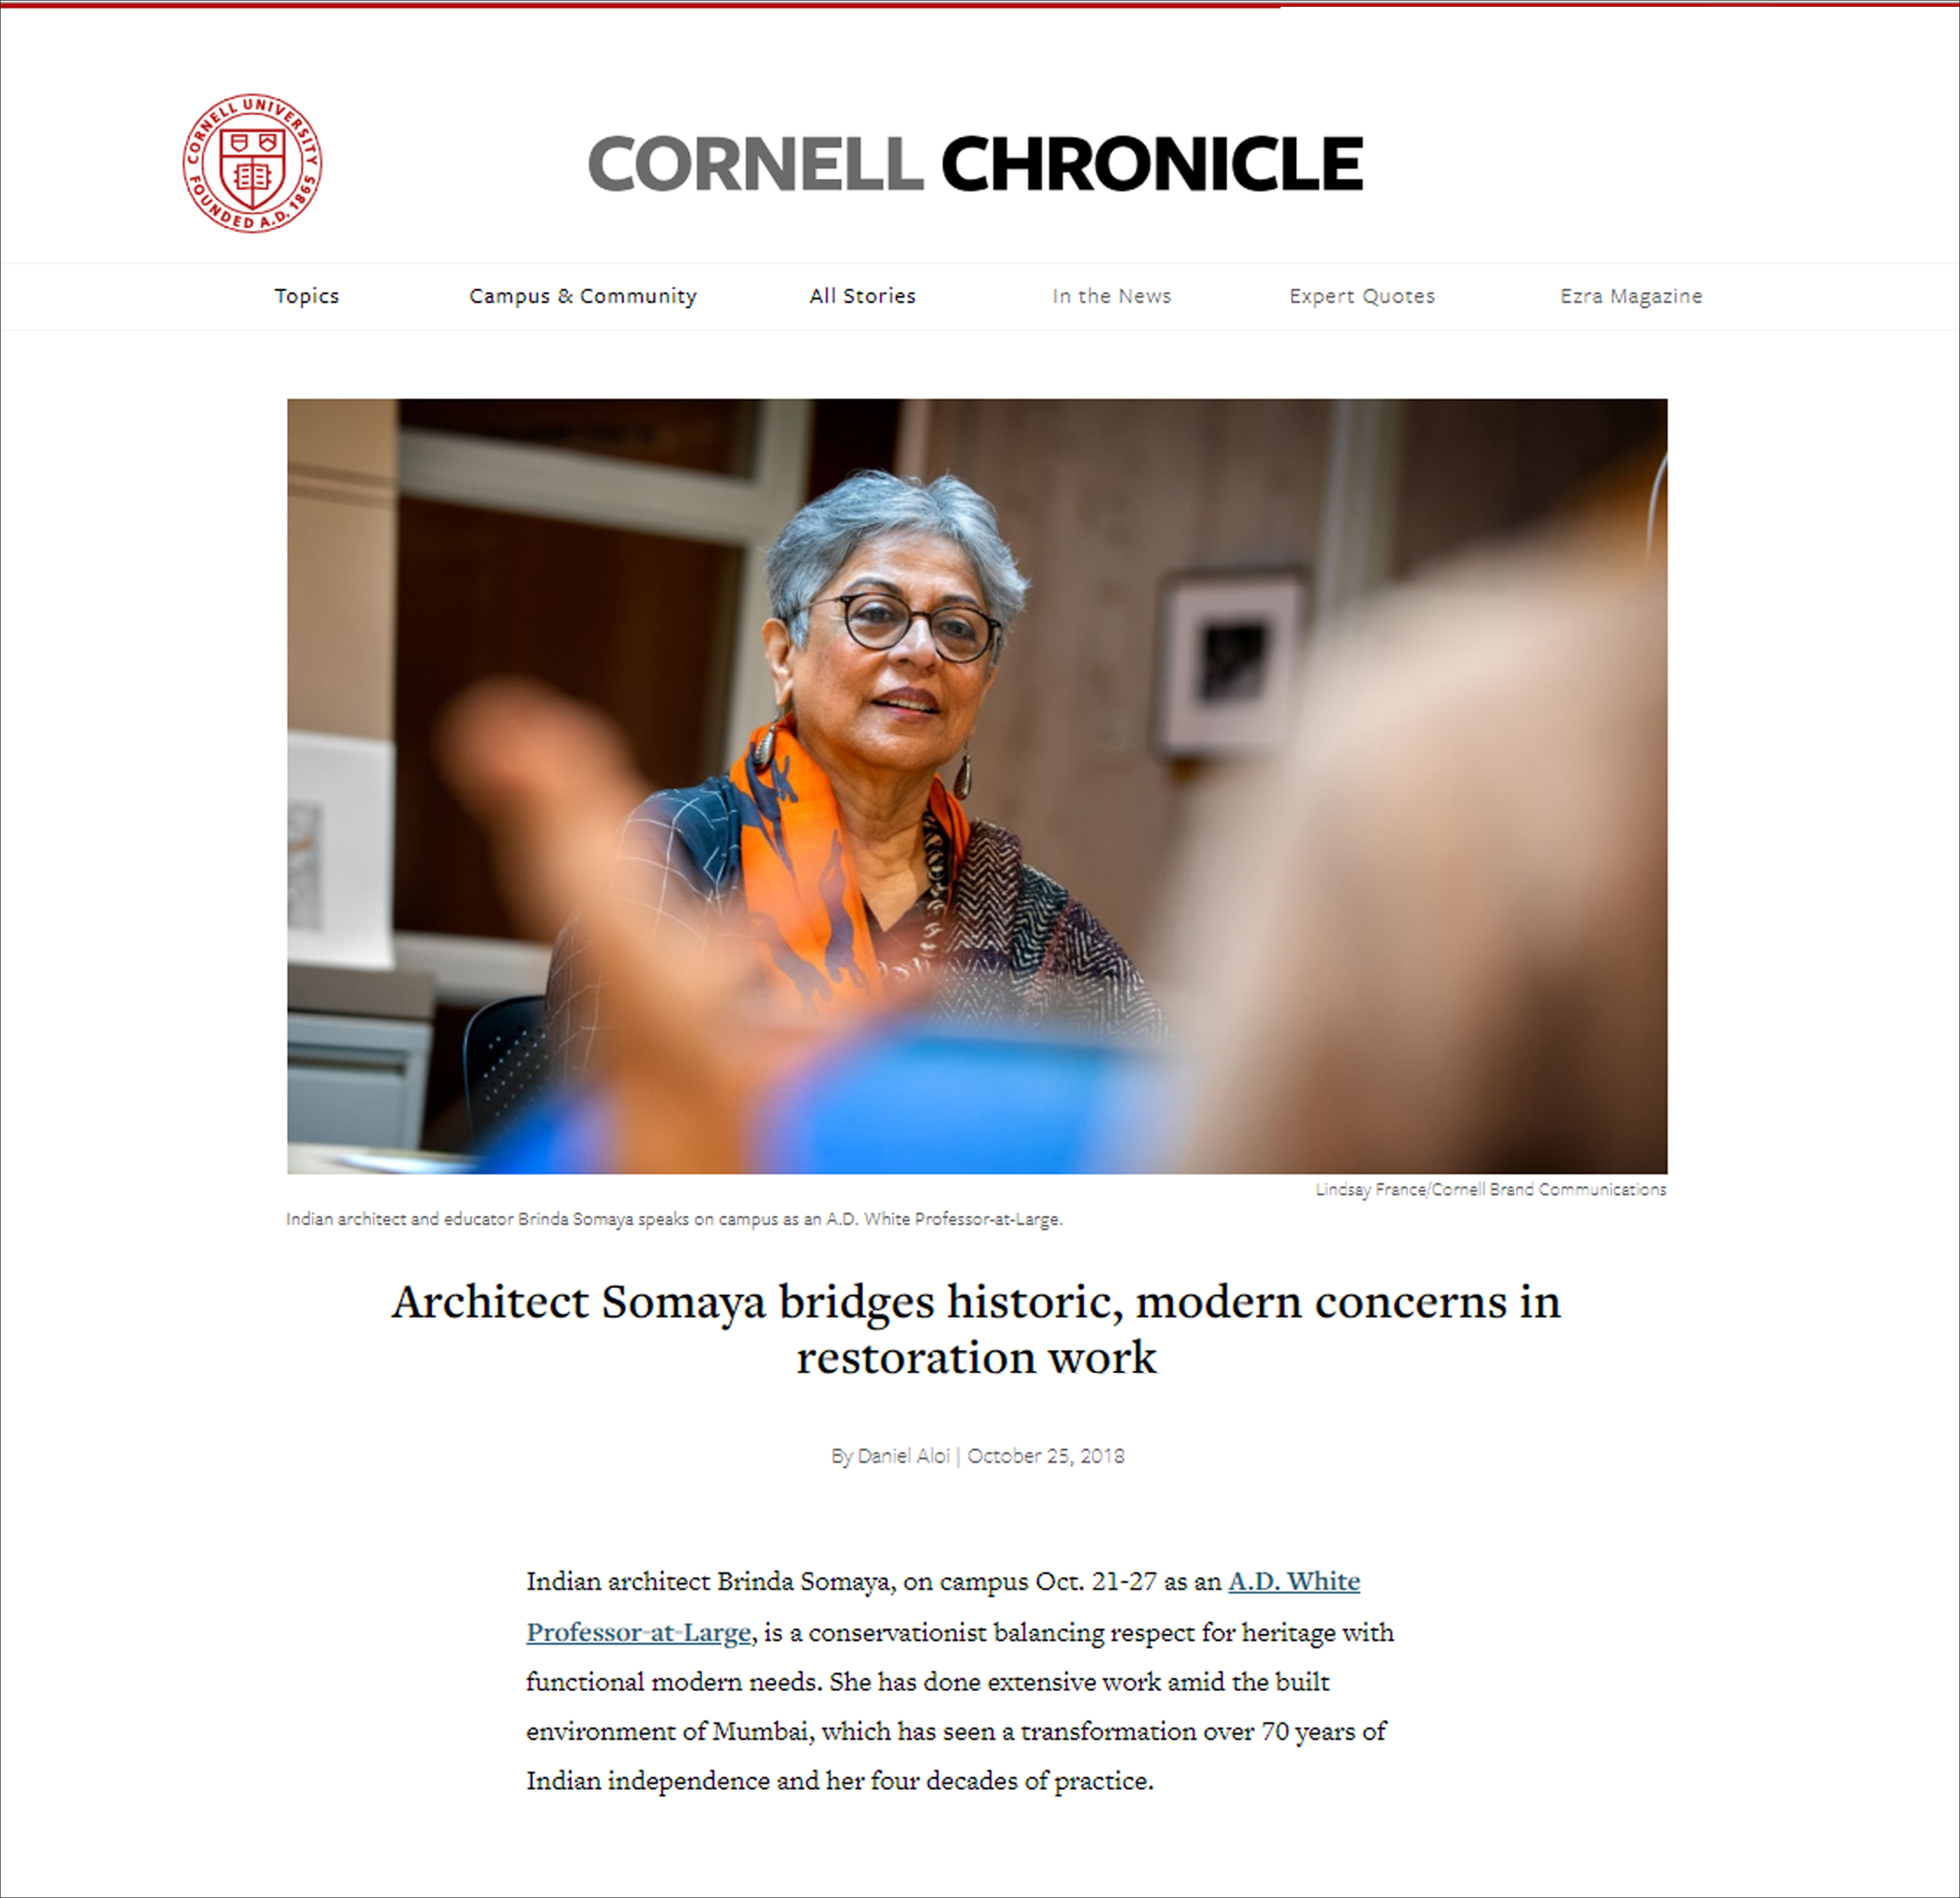 Architect Somaya Bridges historic, modern concerns in restoration work, Cornell Chronicle, on 25 October 2018